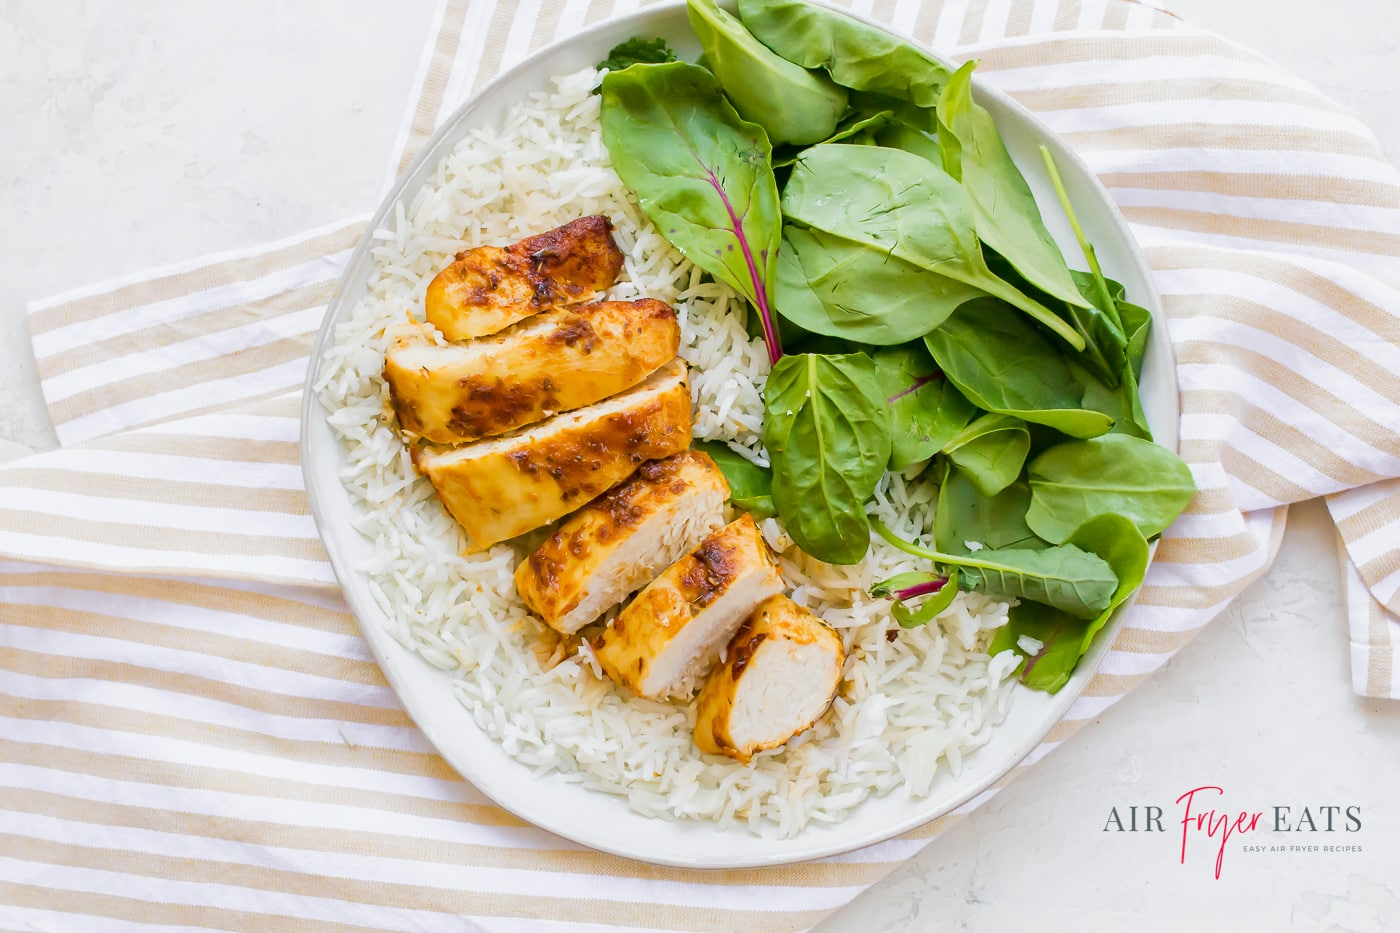 A sliced browned chicken breast arranged over a plate of white rice aside a pile of fresh spinach